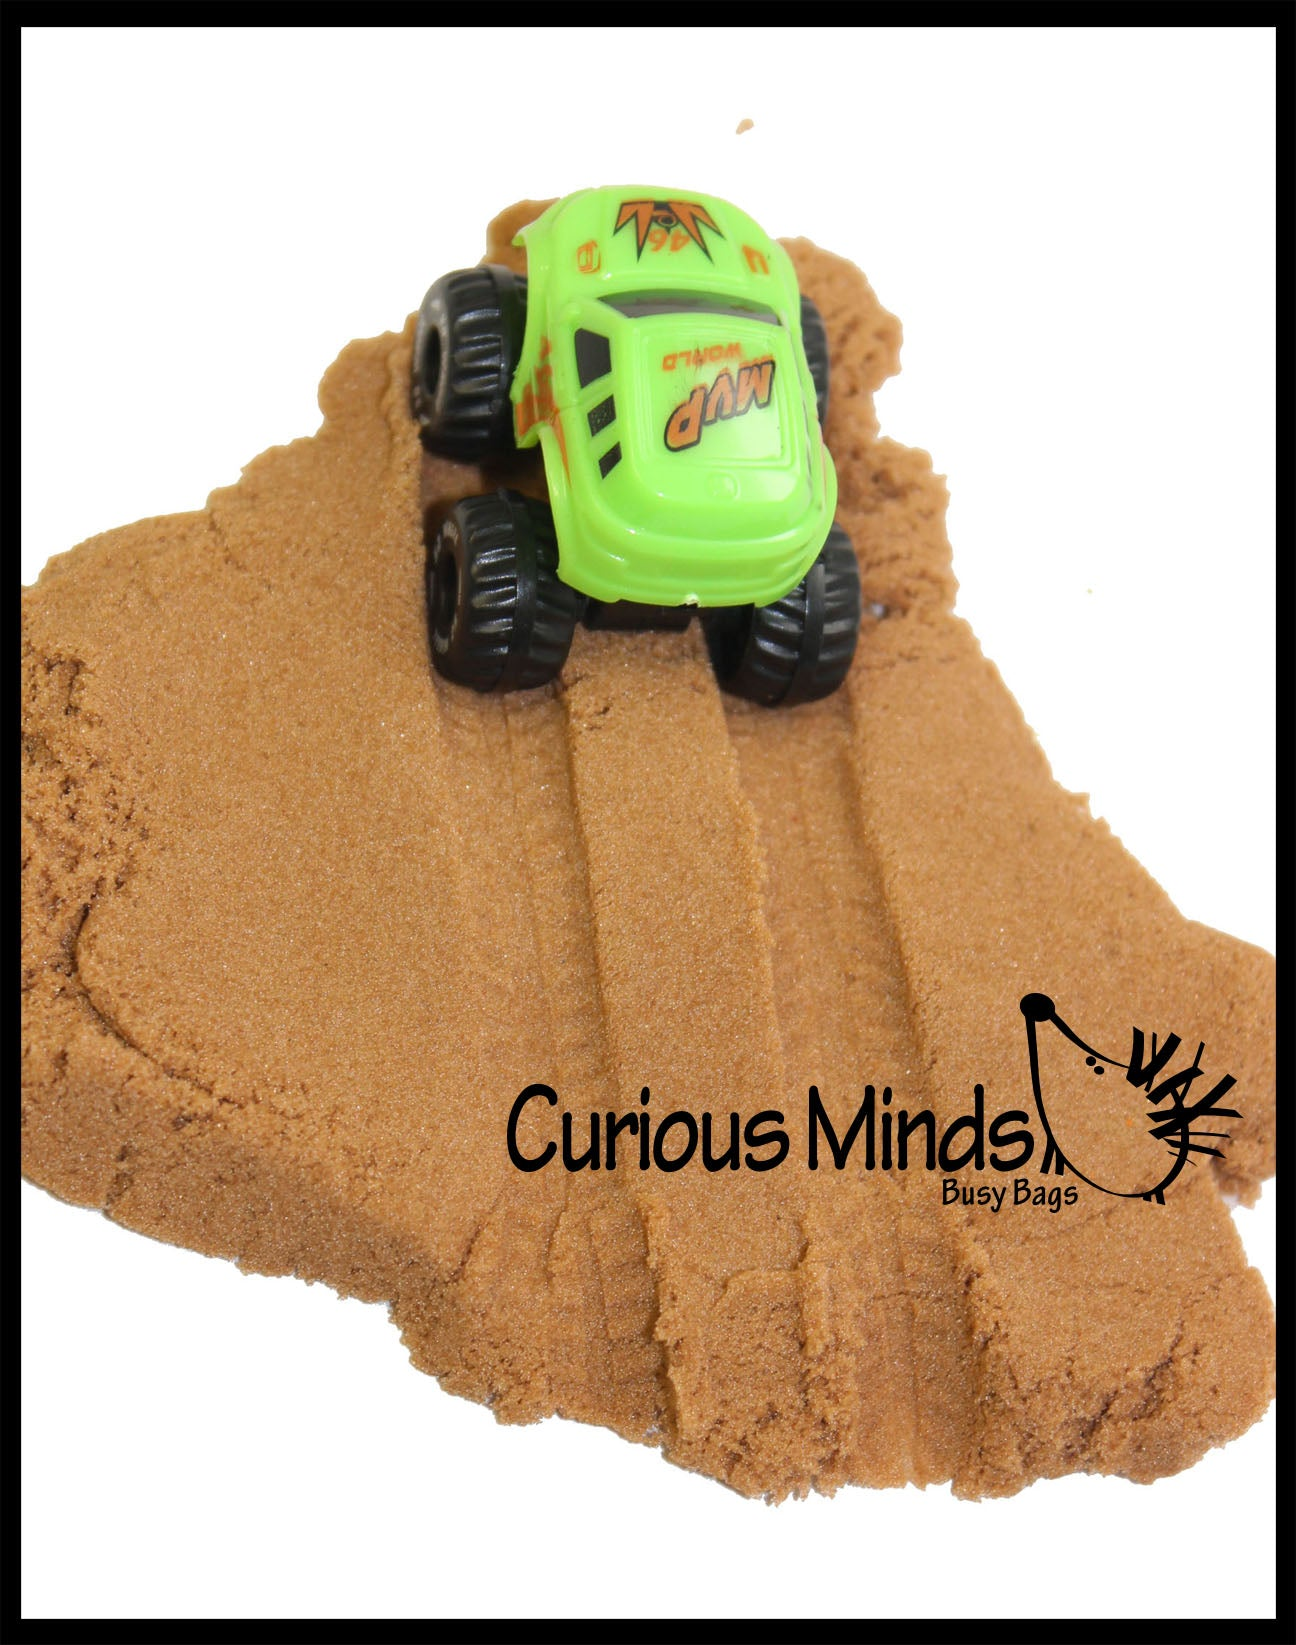 Mini Container of Play Dirt Sand and Trucks - Moving Sand